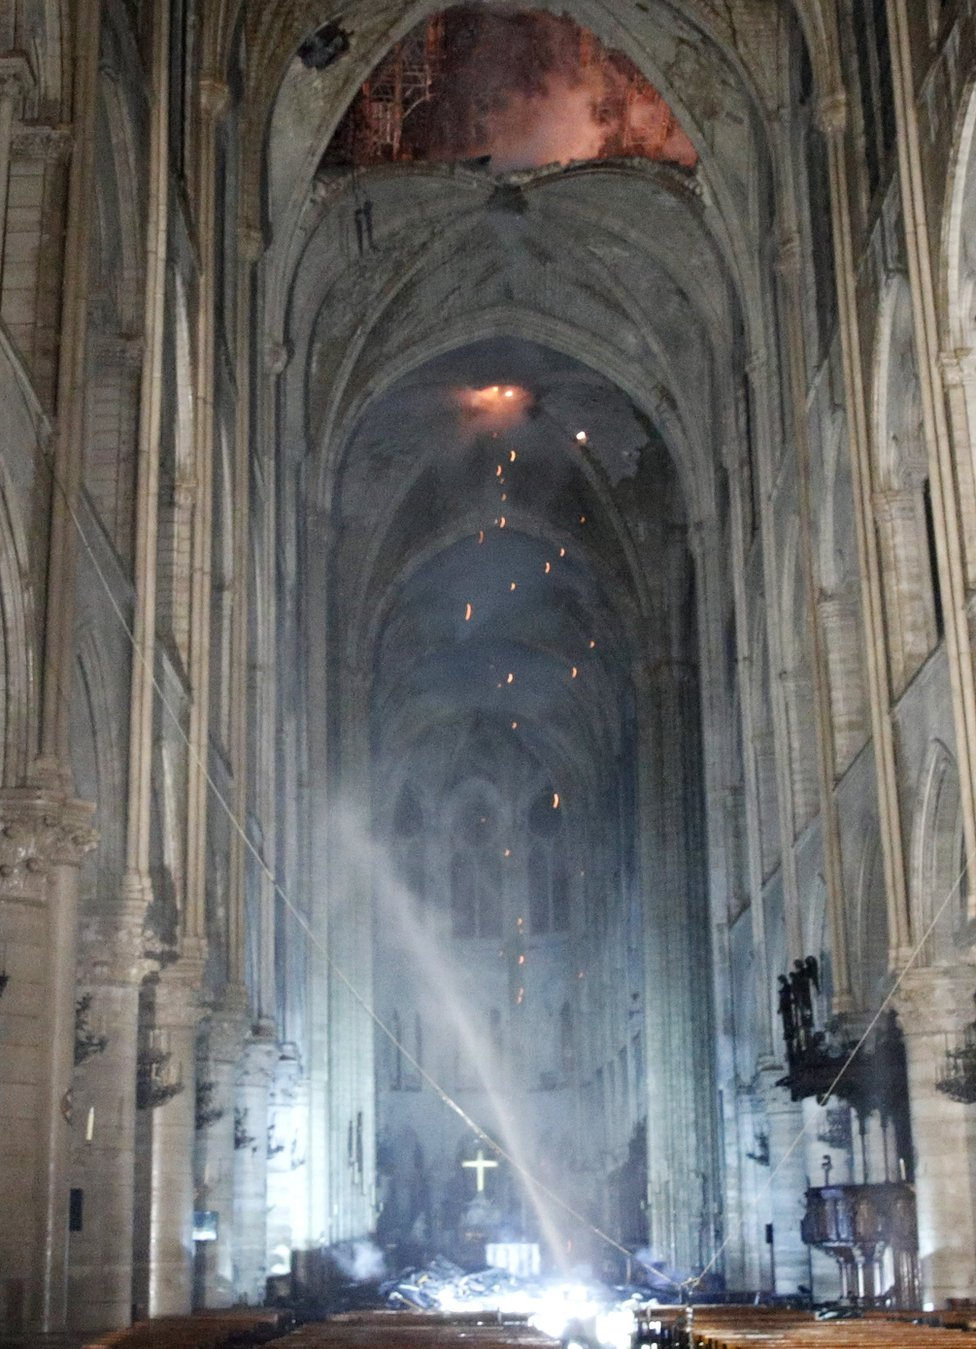 Interior view of Notre Dame during the fire